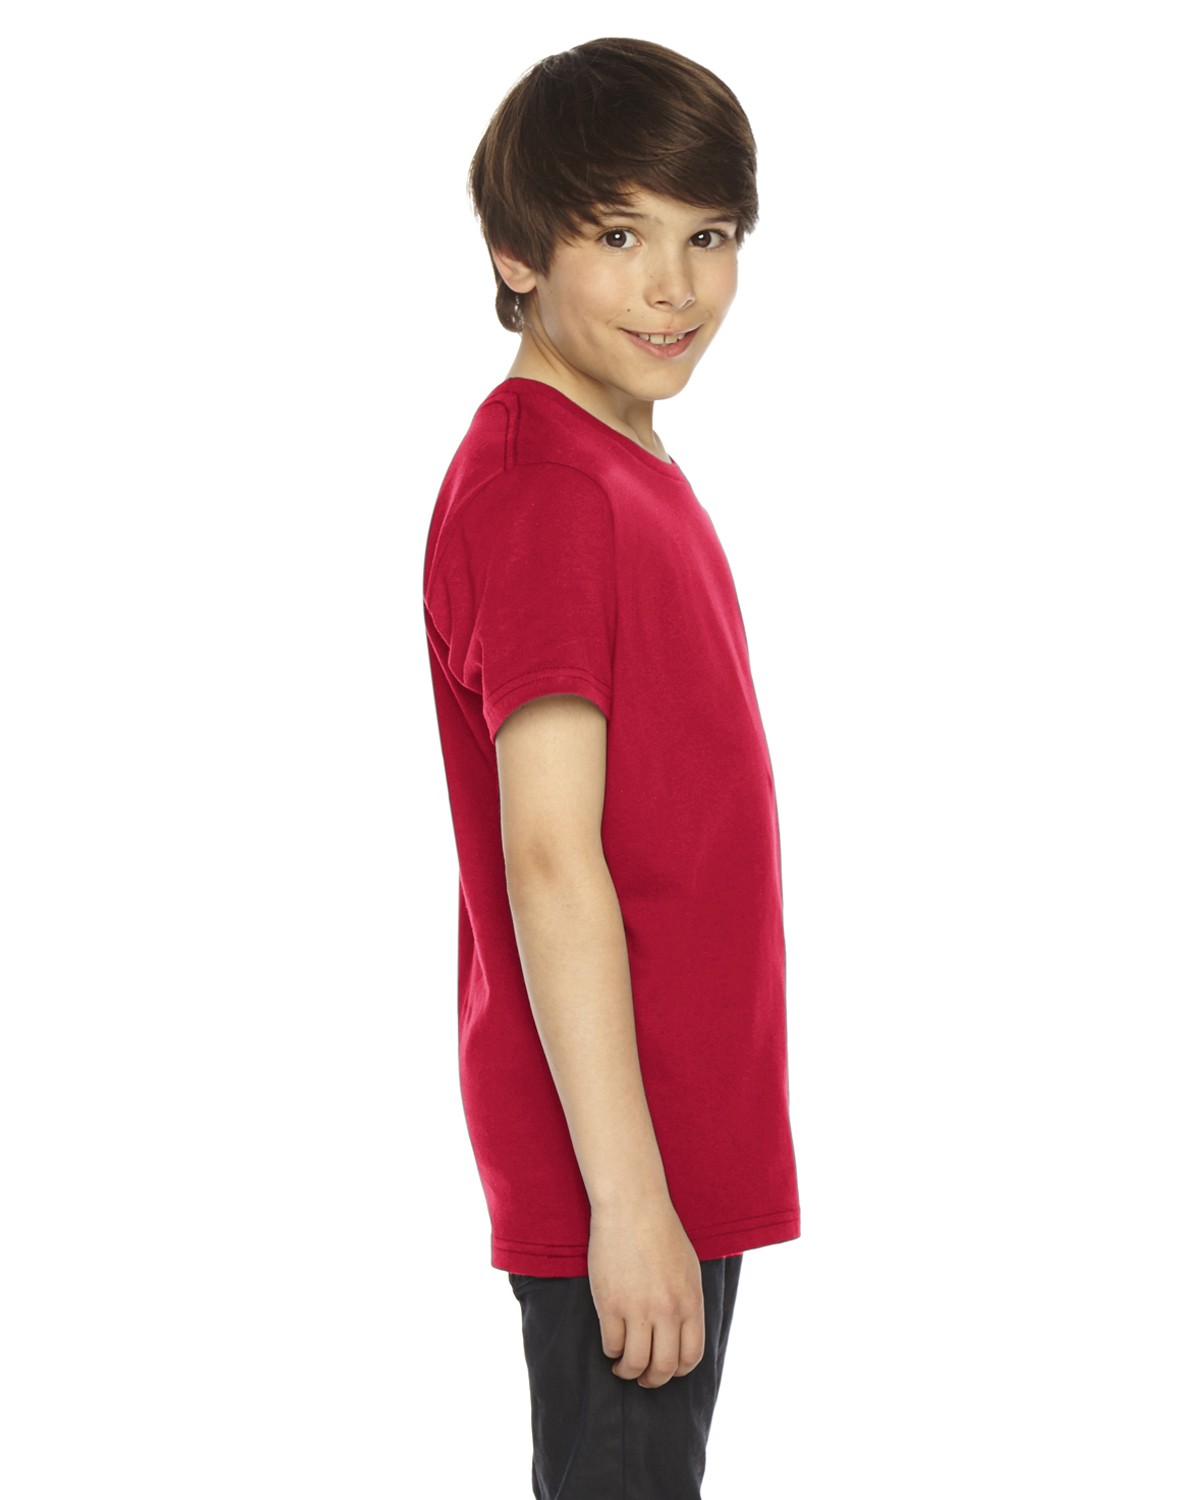 2201W American Apparel RED